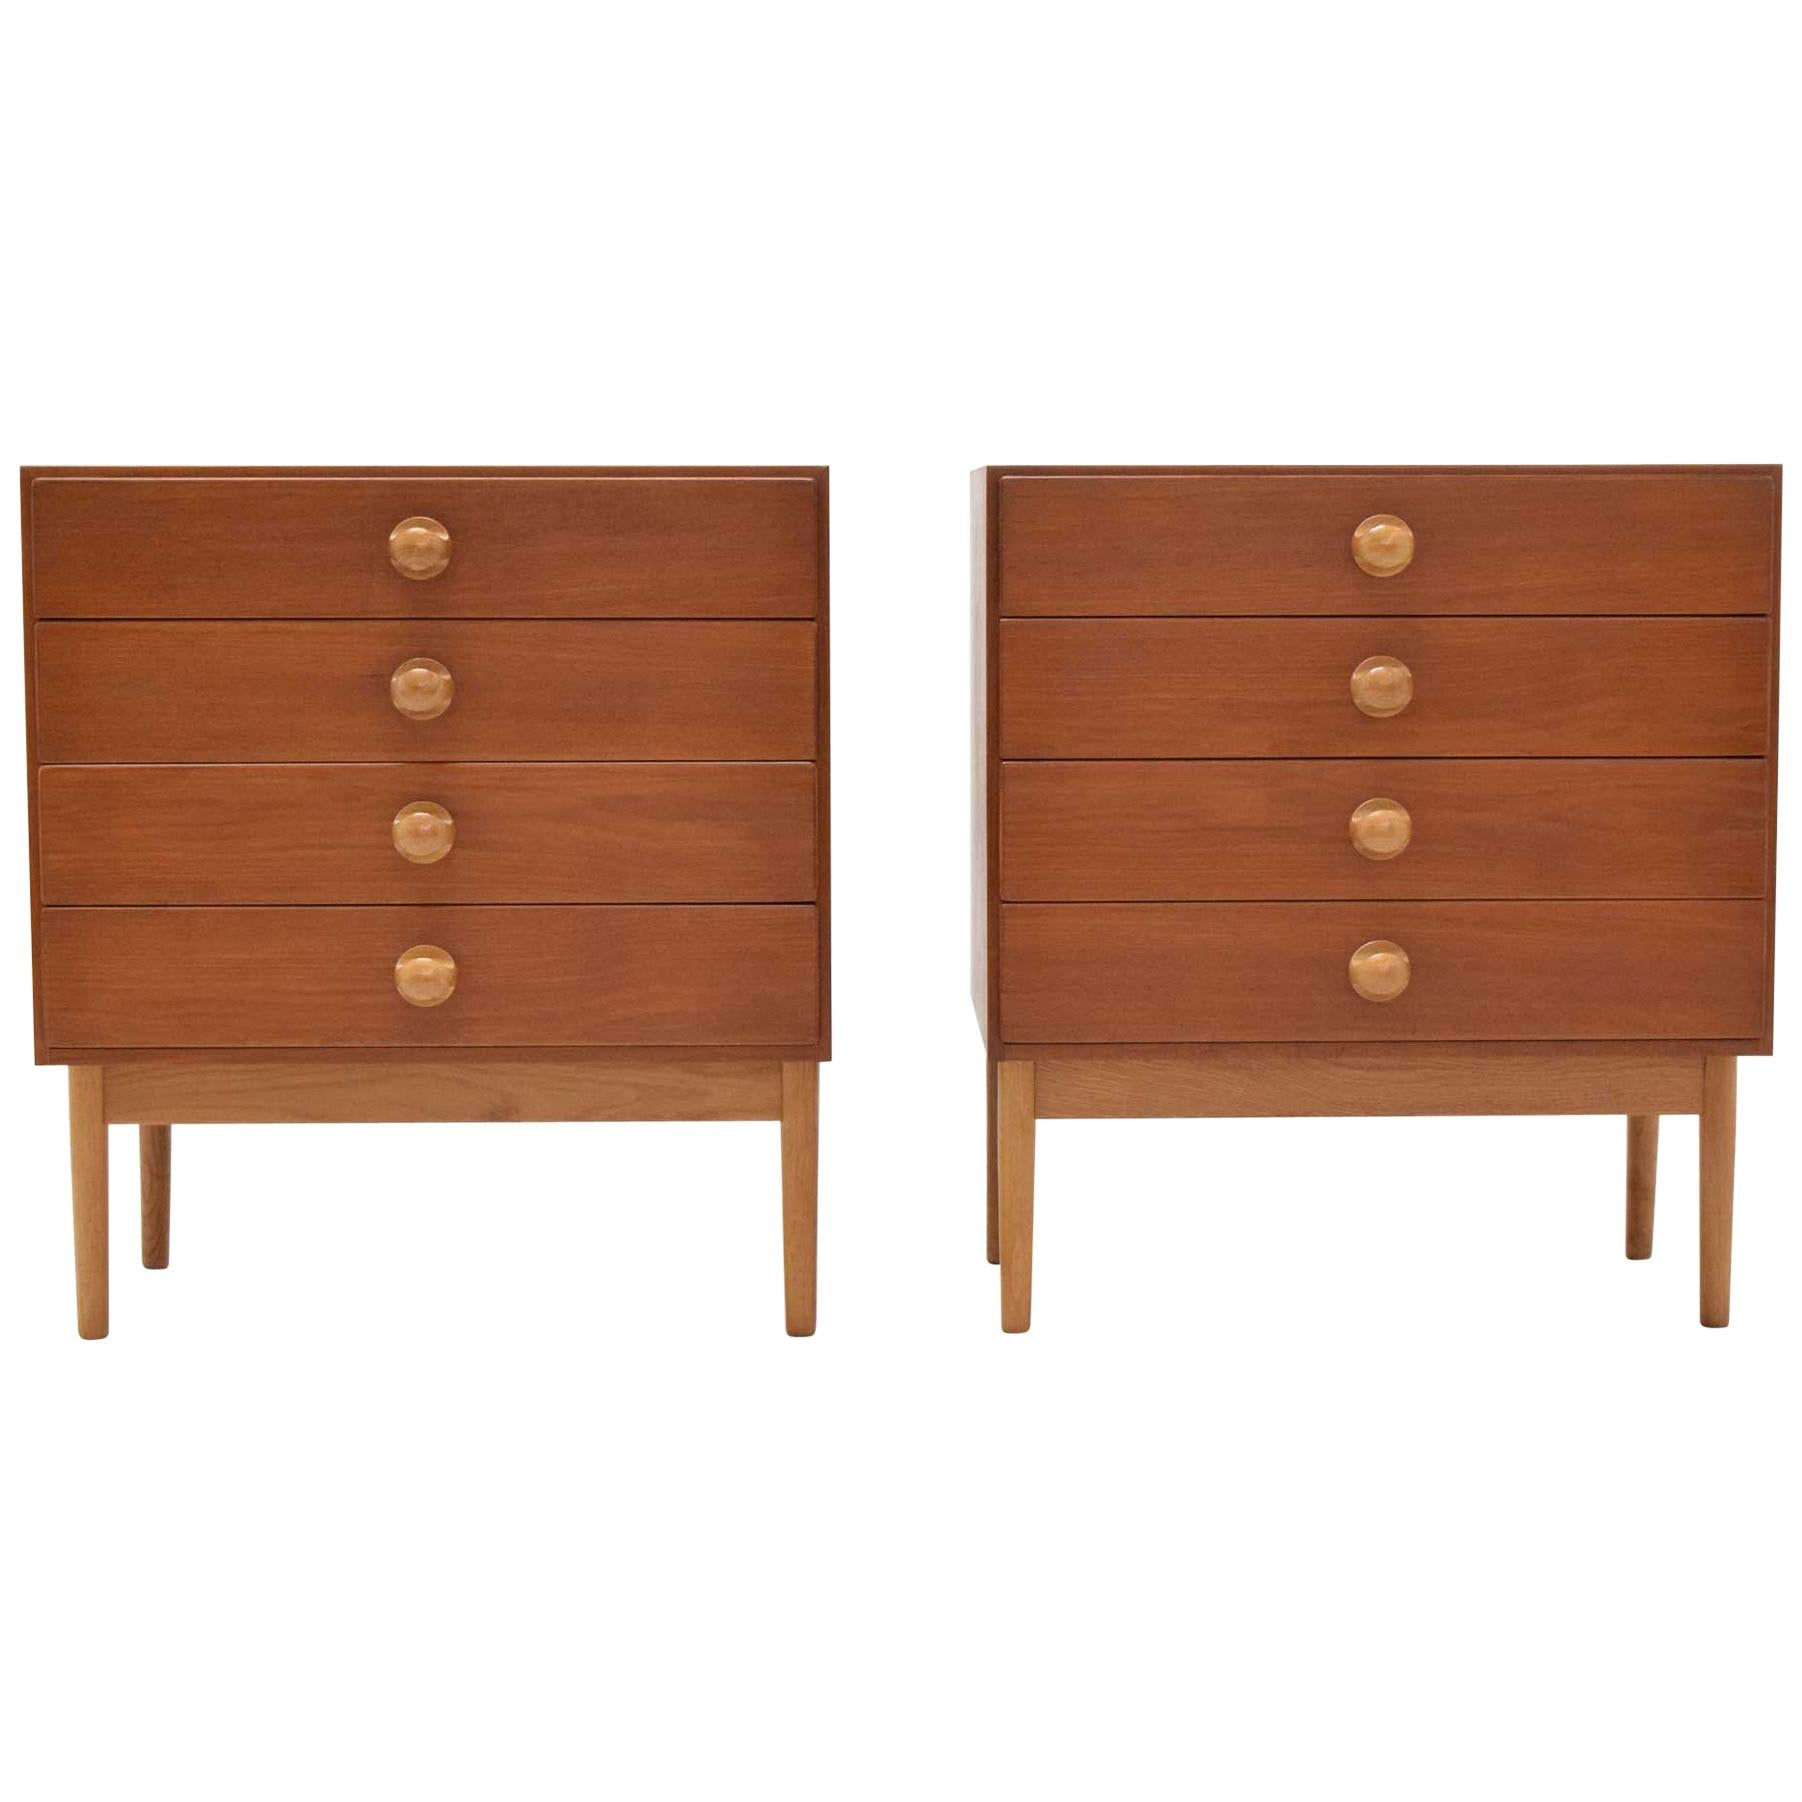 Borge Mogensen Chests of Drawers, 1960s